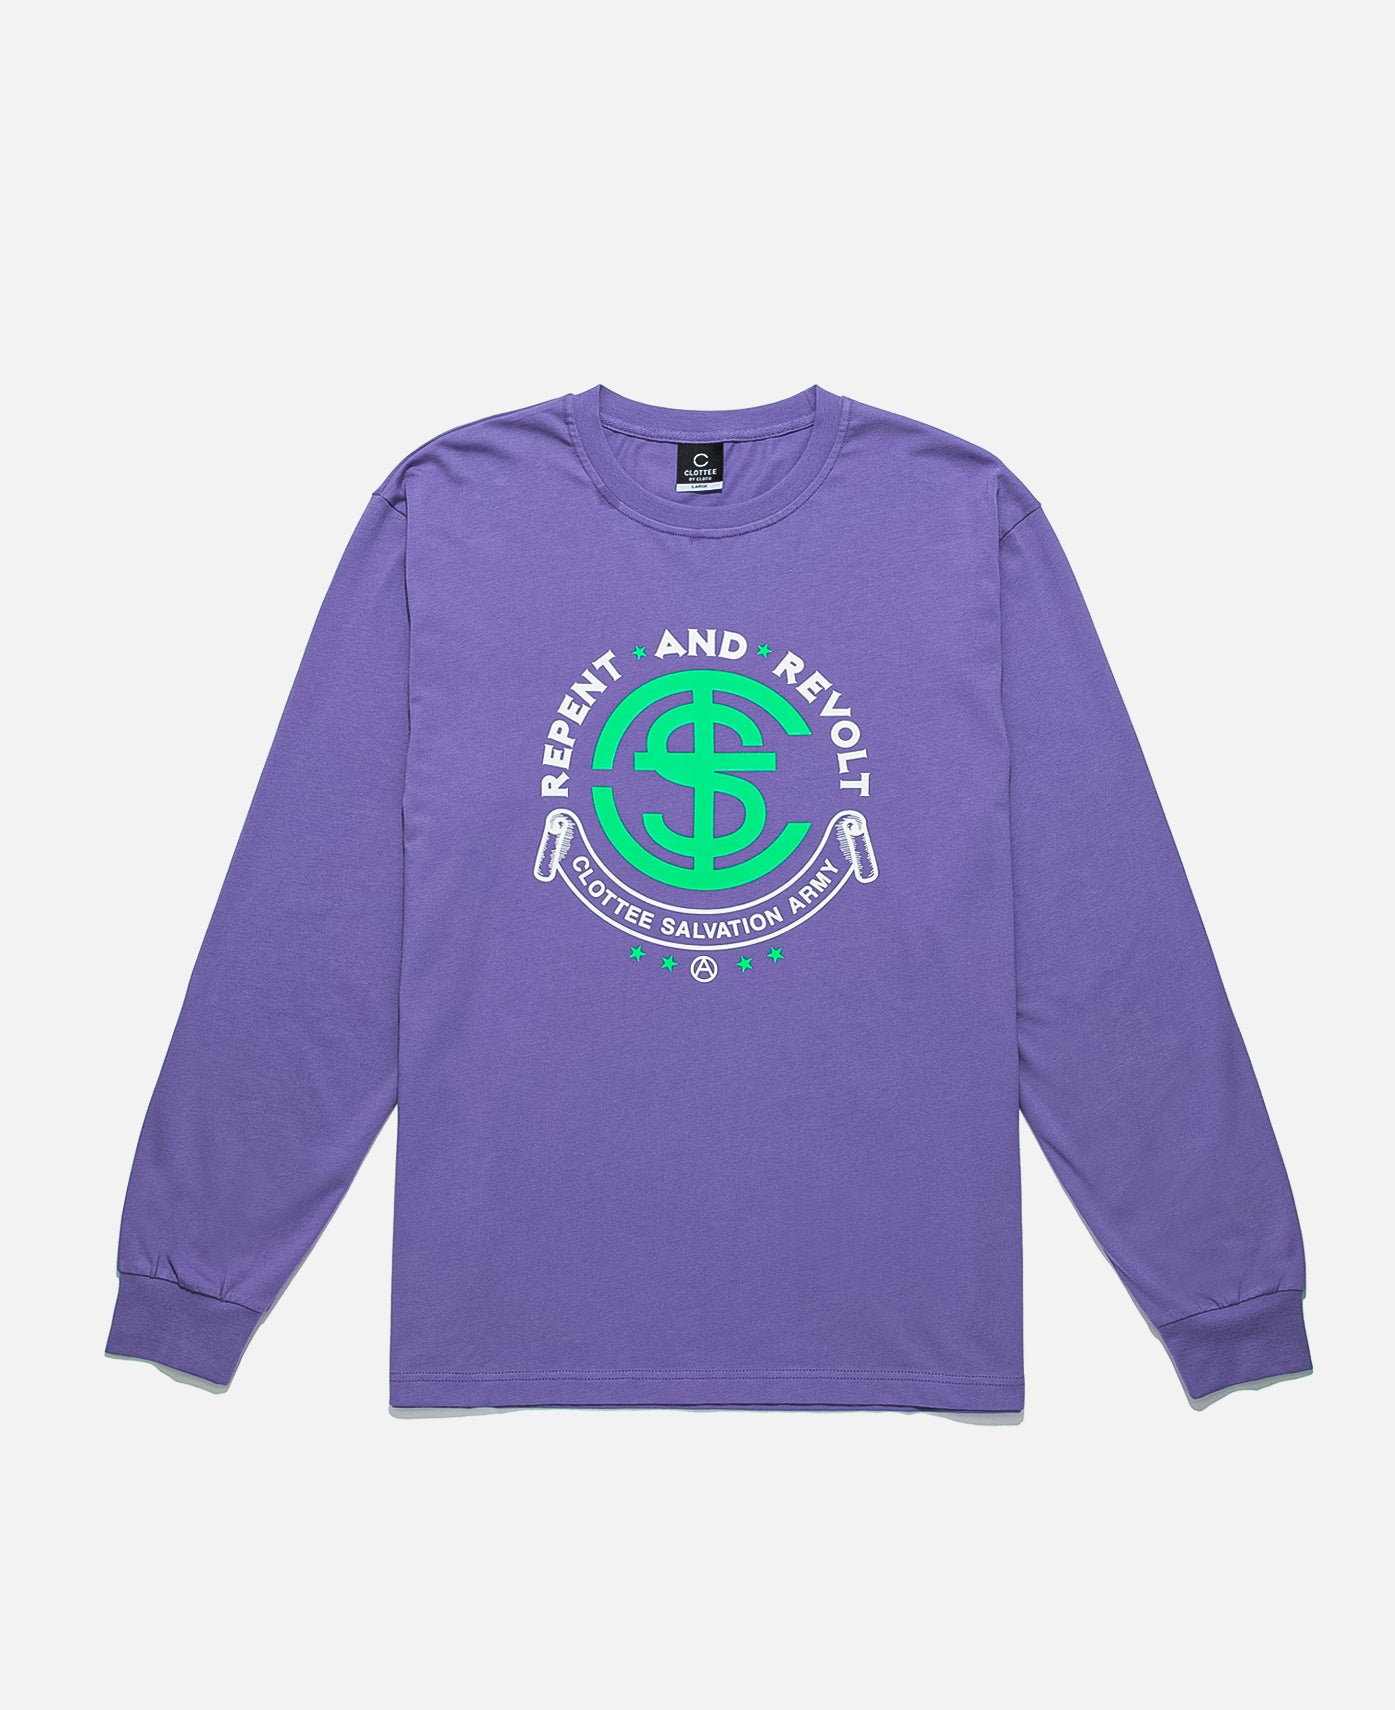 Repent And Revolt L/S T-Shirt (Purple)